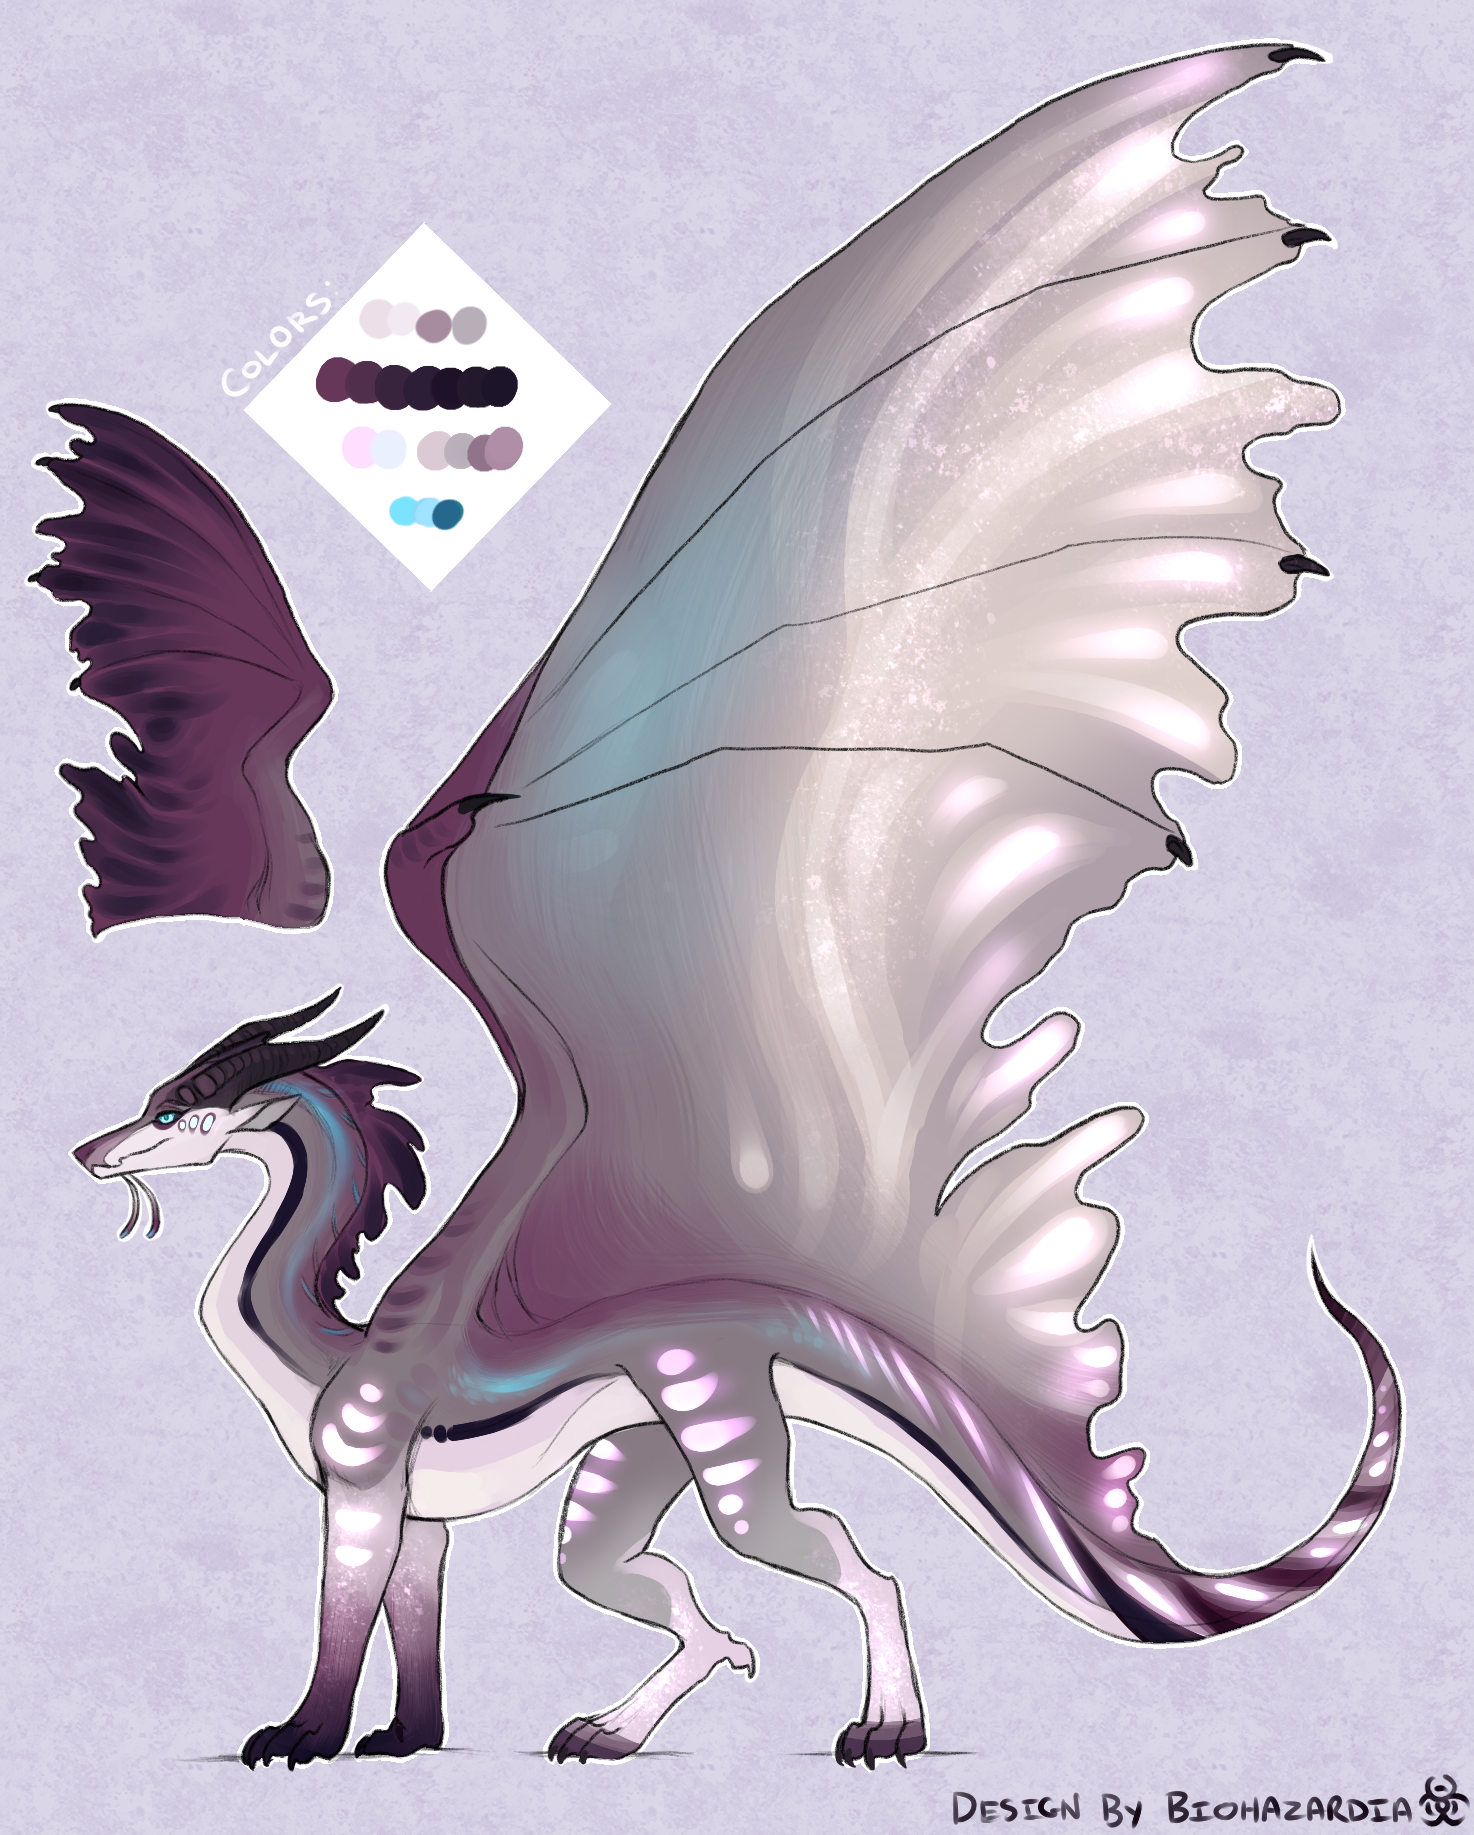 SilkWing/SeaWing design made for Allyval as a Christmas